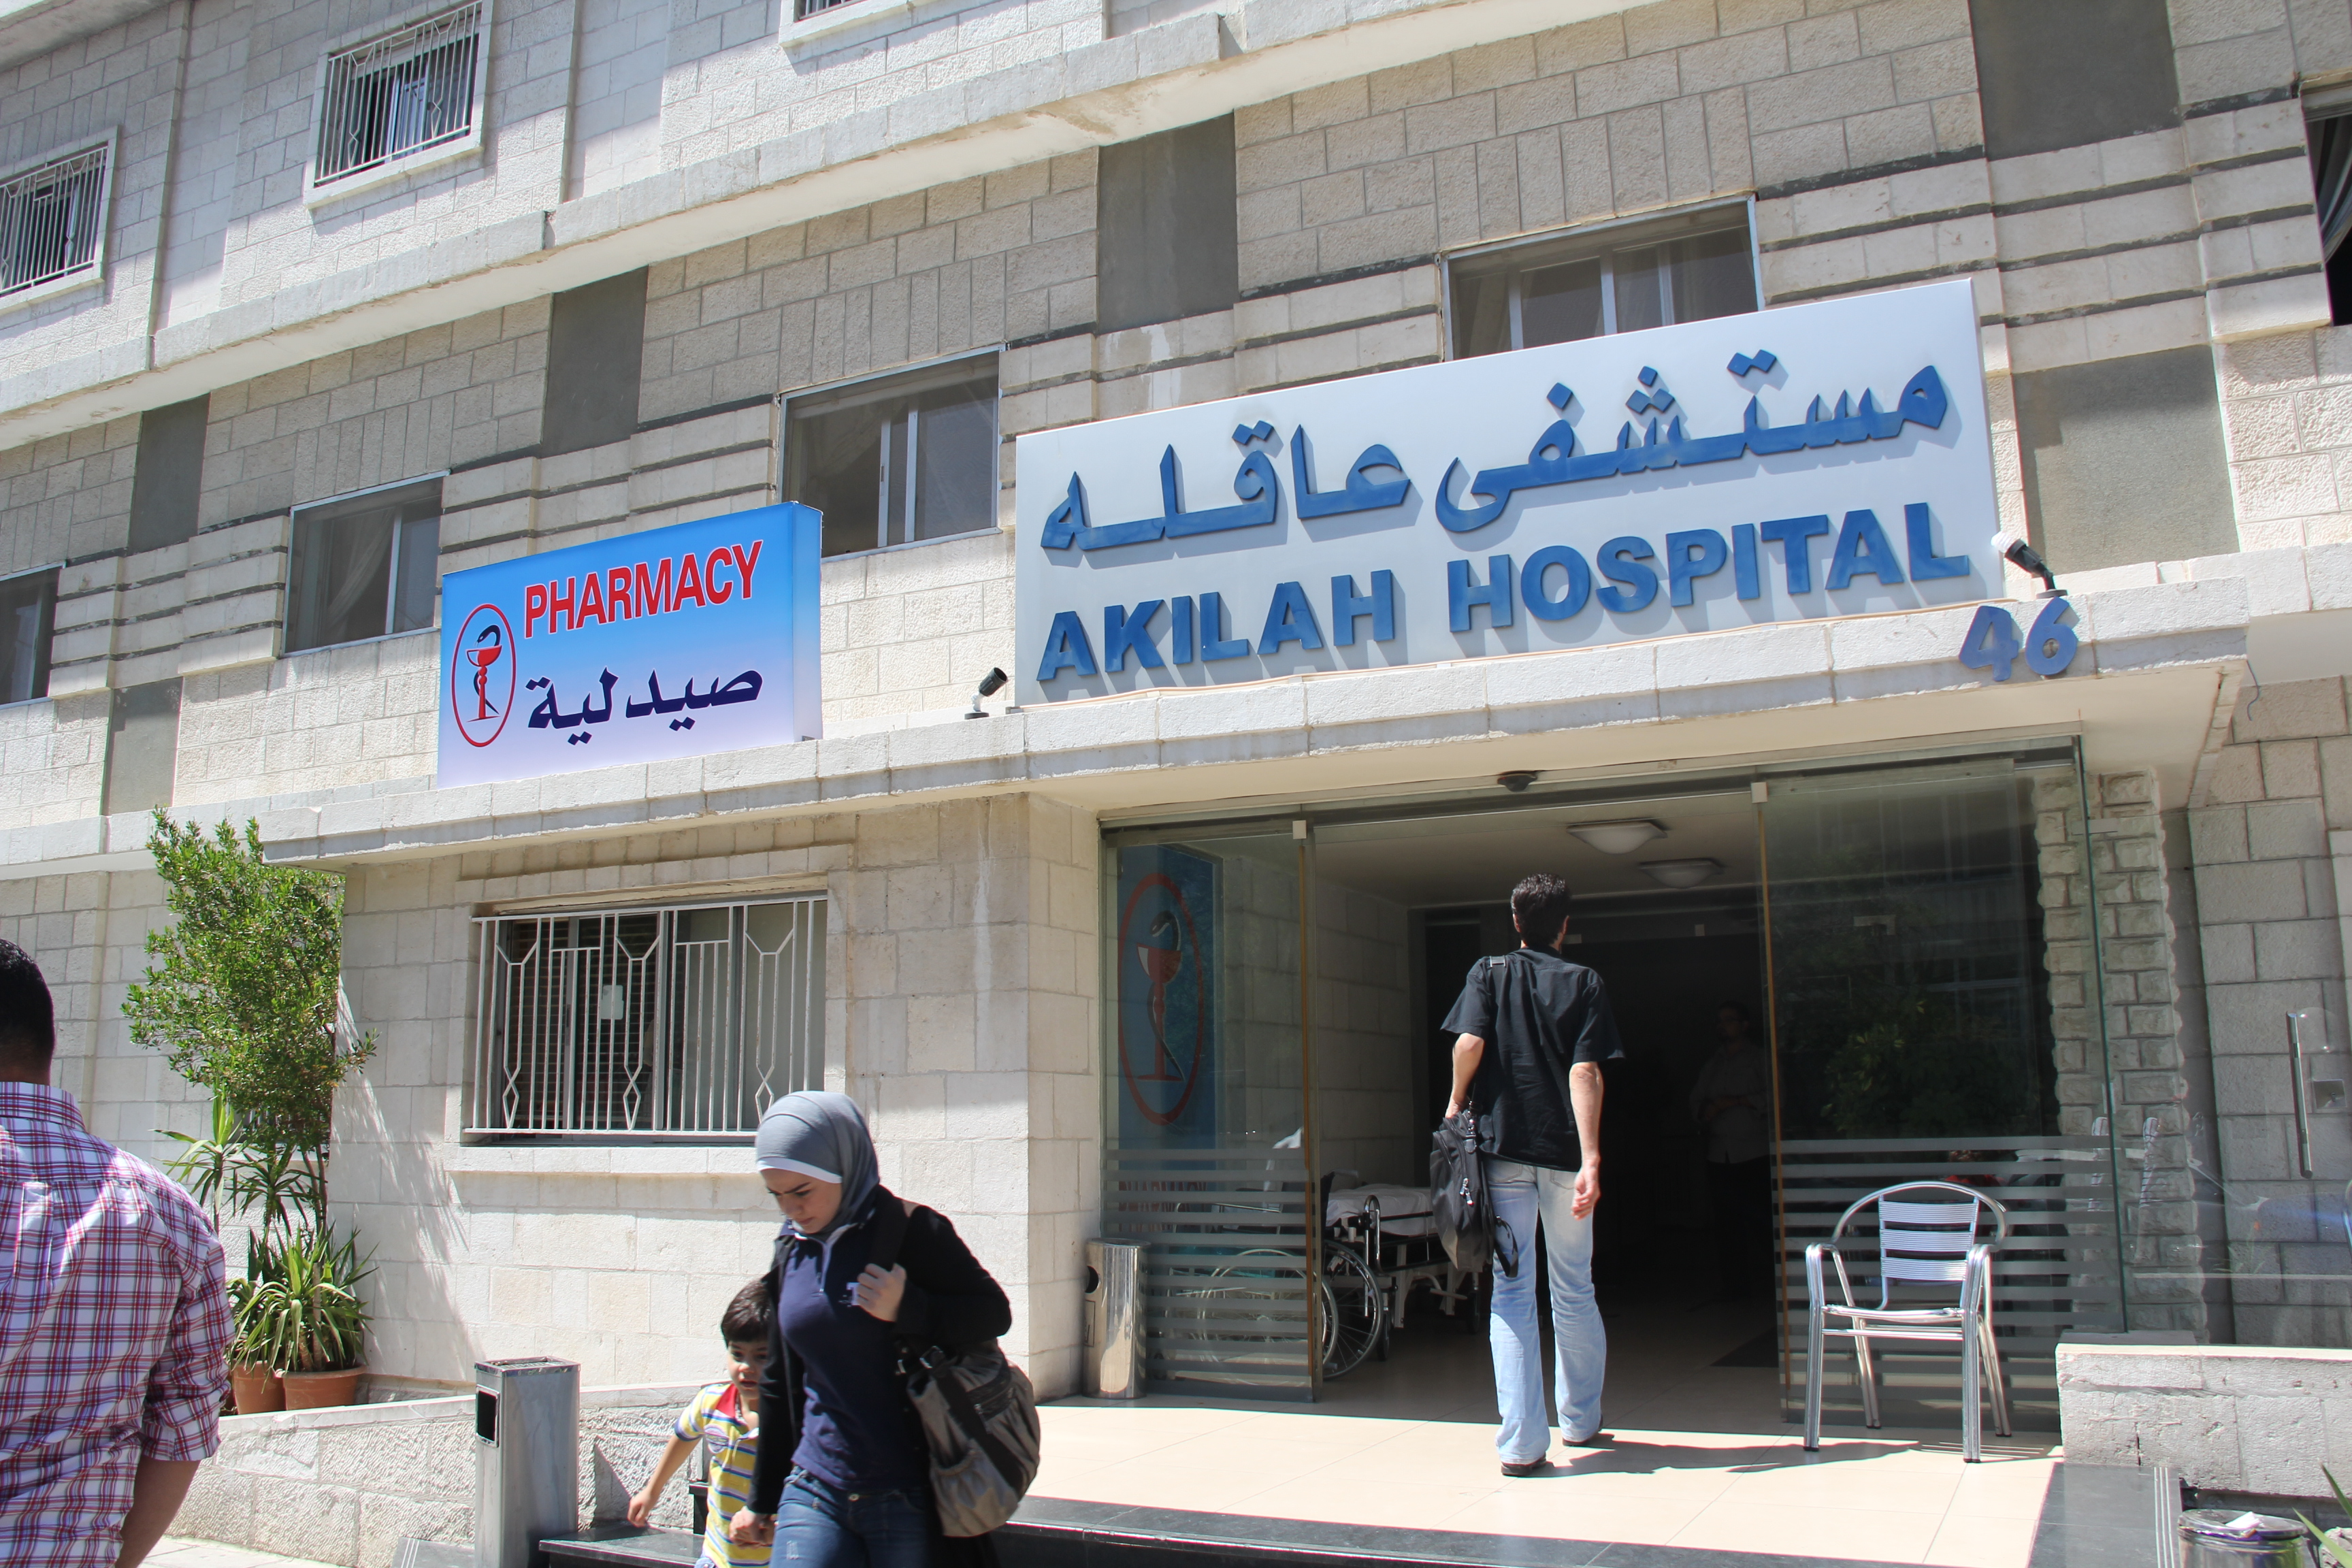 First Experiences at Akilah Hospital